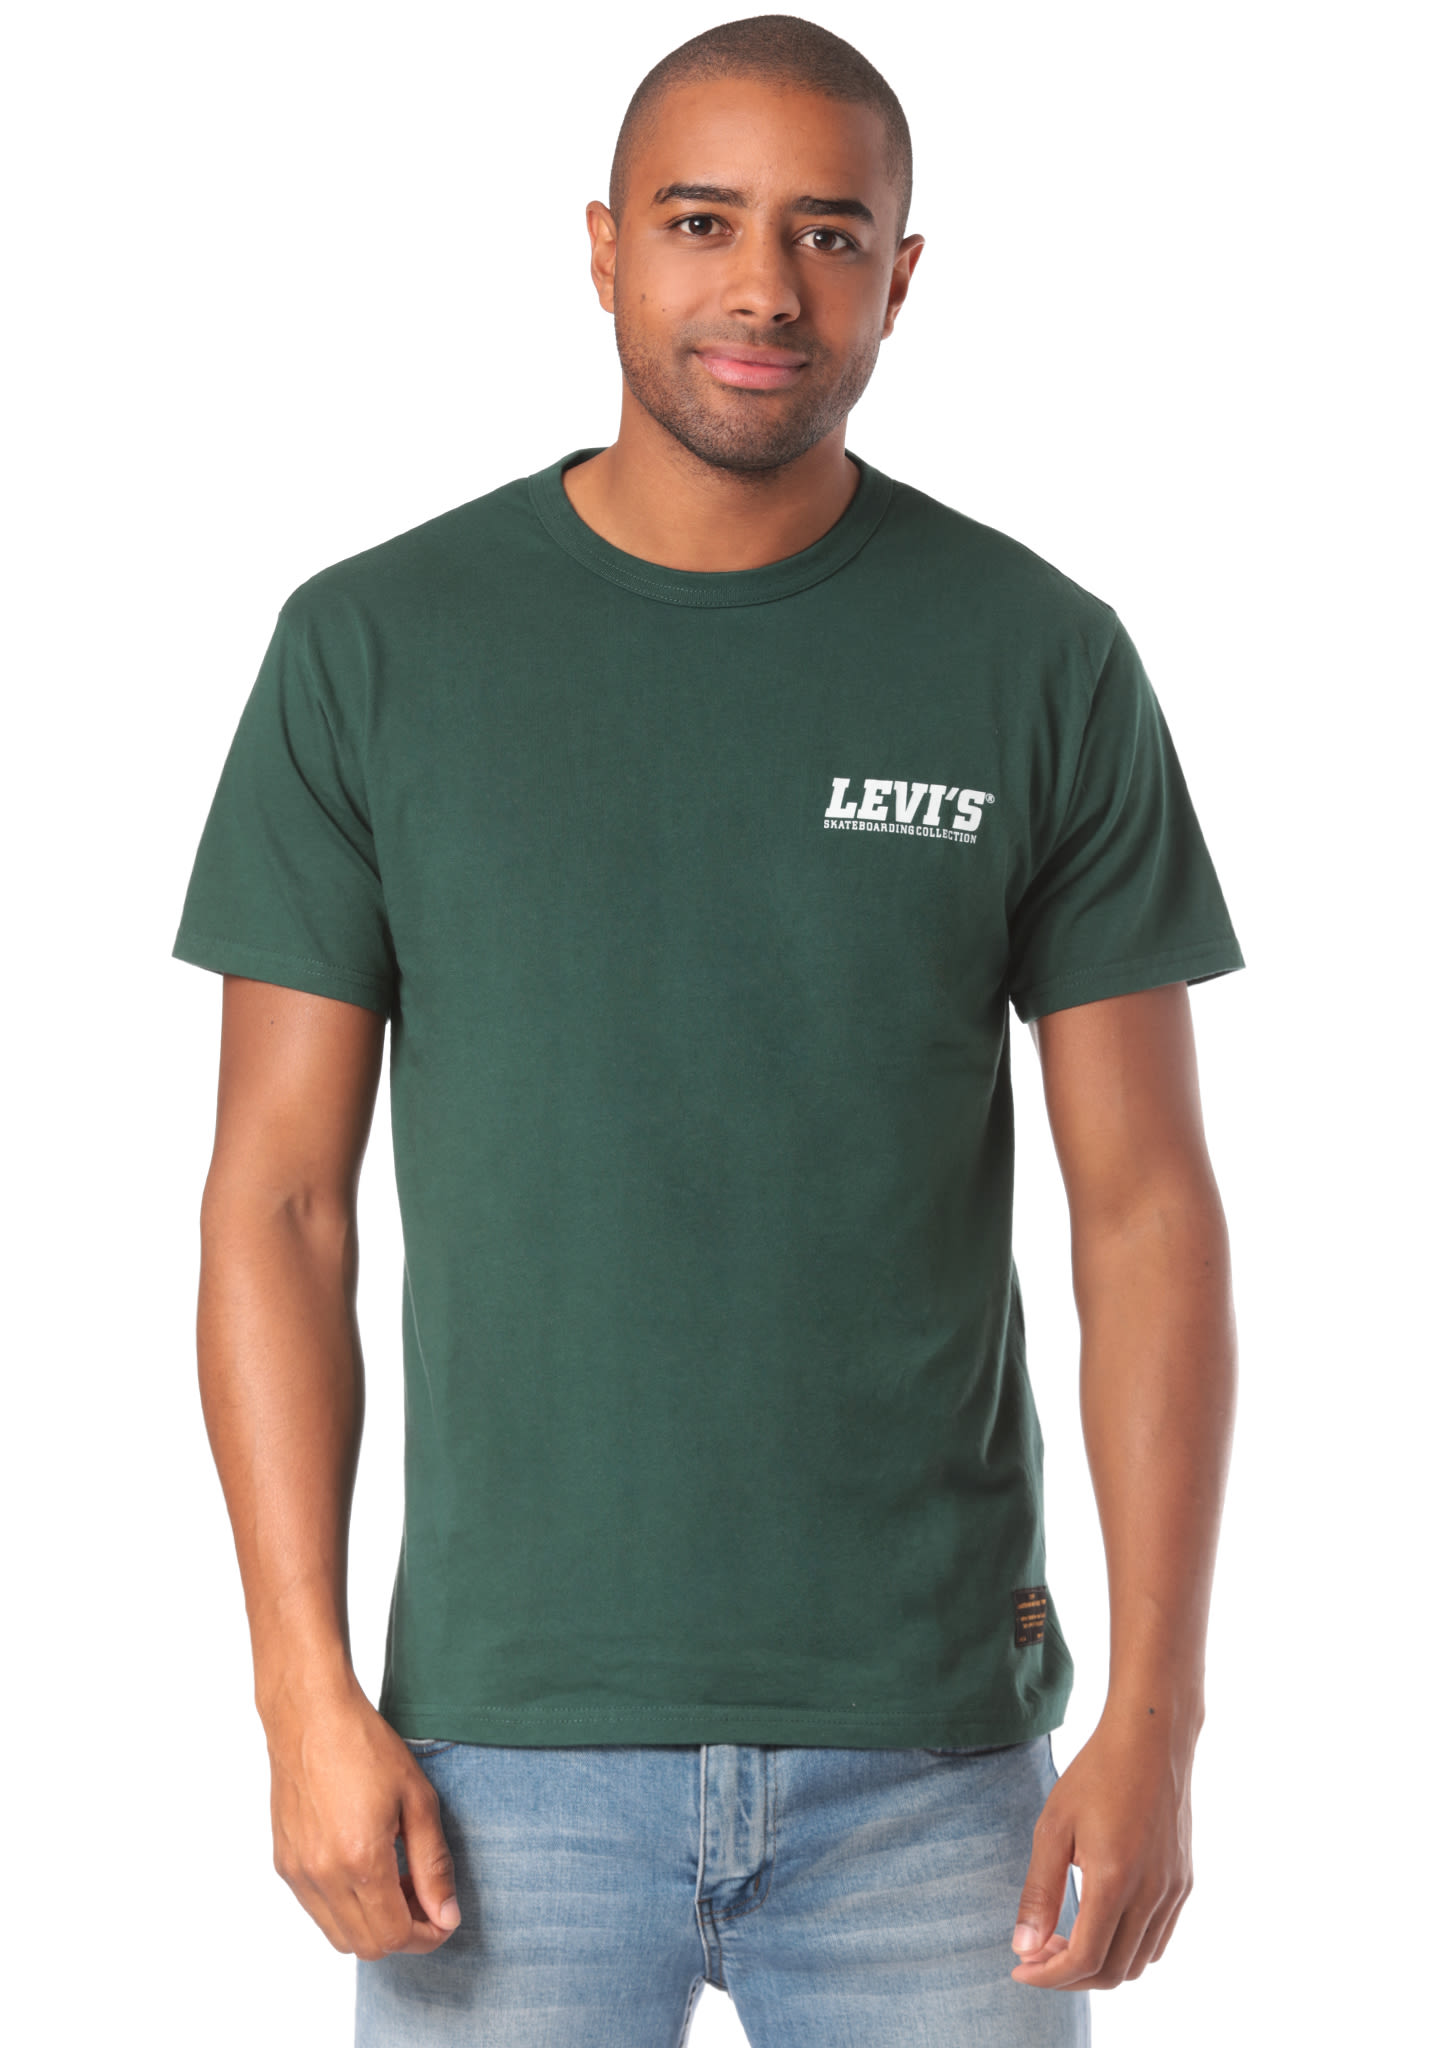 f06a6c14c Levi s Skate Graphic - T-Shirt for Men - Green - Planet Sports